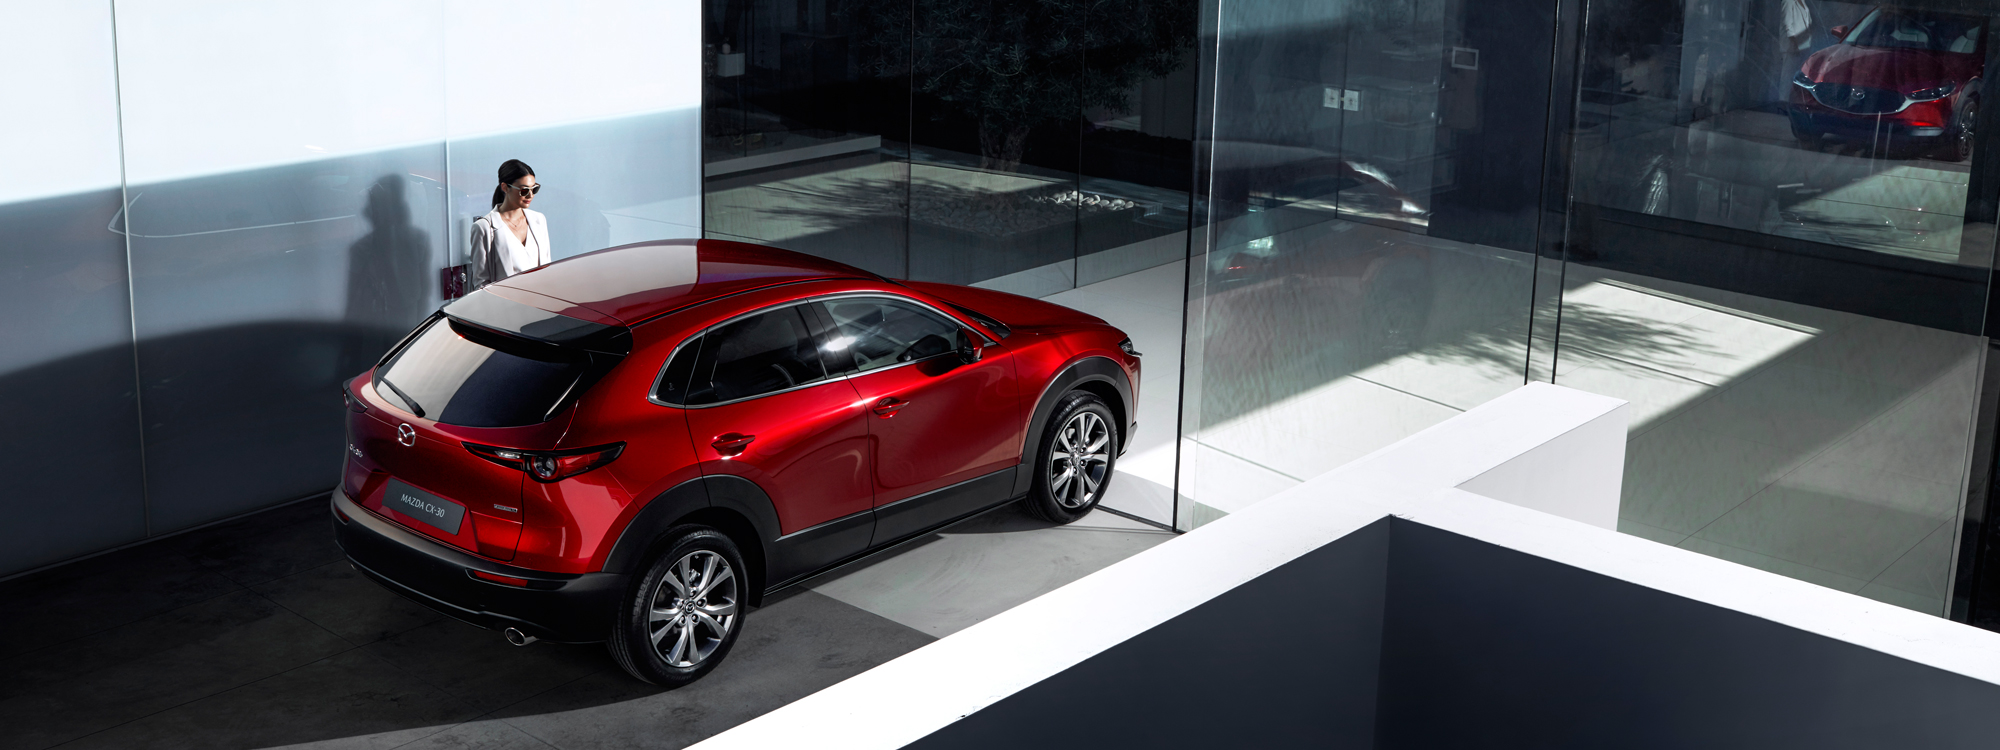 Mazda CX-30 with a woman